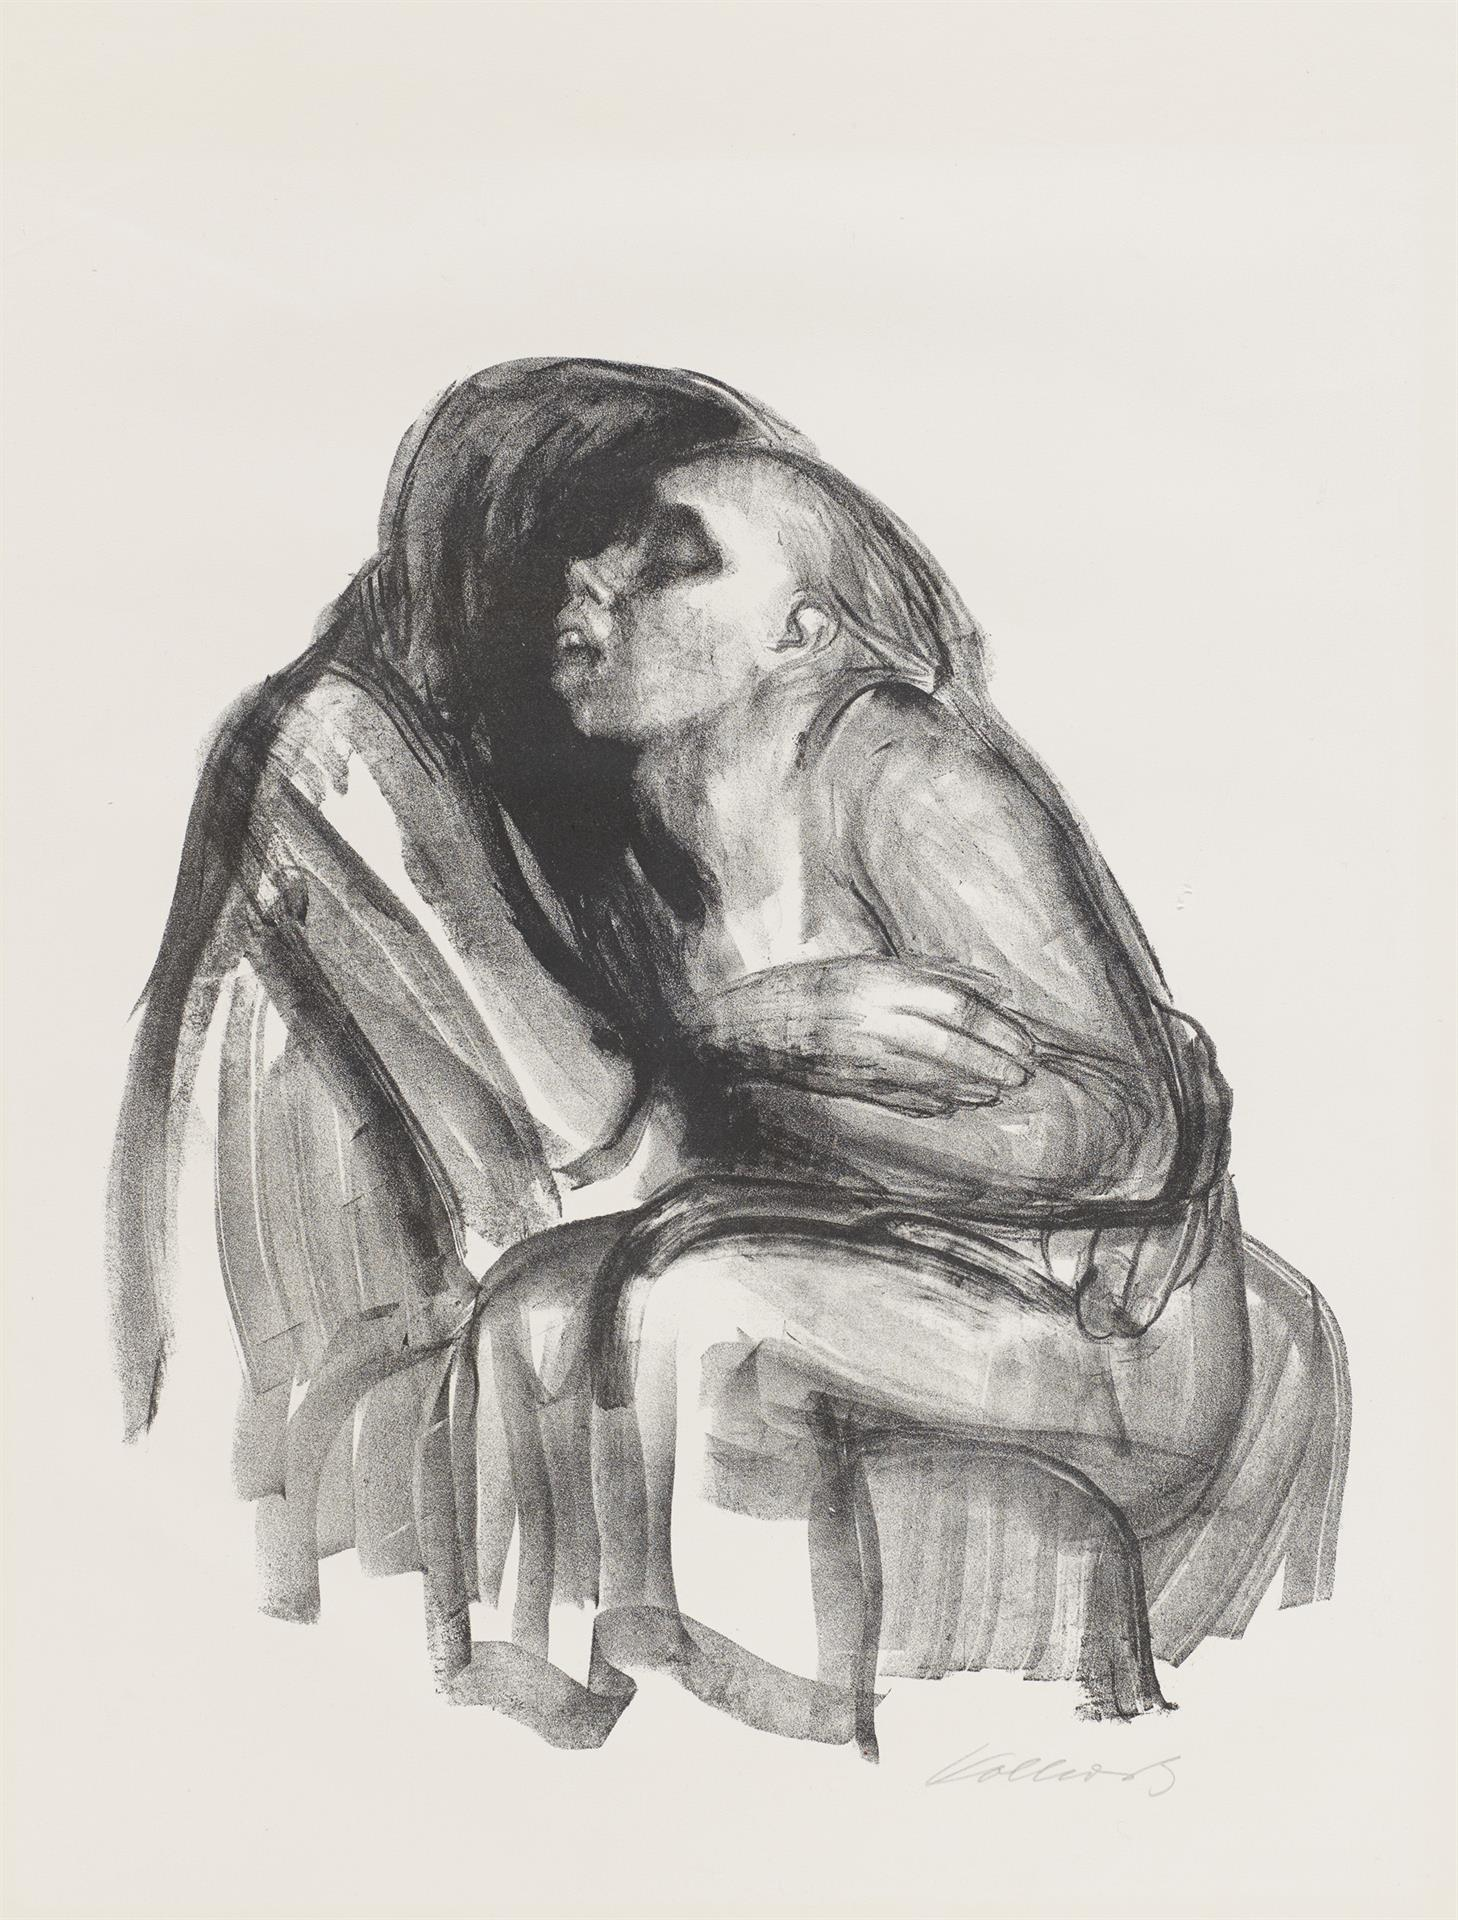 Käthe Kollwitz, Young Girl in the Lap of Death, sheet 2 of the series »Death«, 1934, crayon lithograph, Kn 265 b, Cologne Kollwitz Collection © Käthe Kollwitz Museum Köln